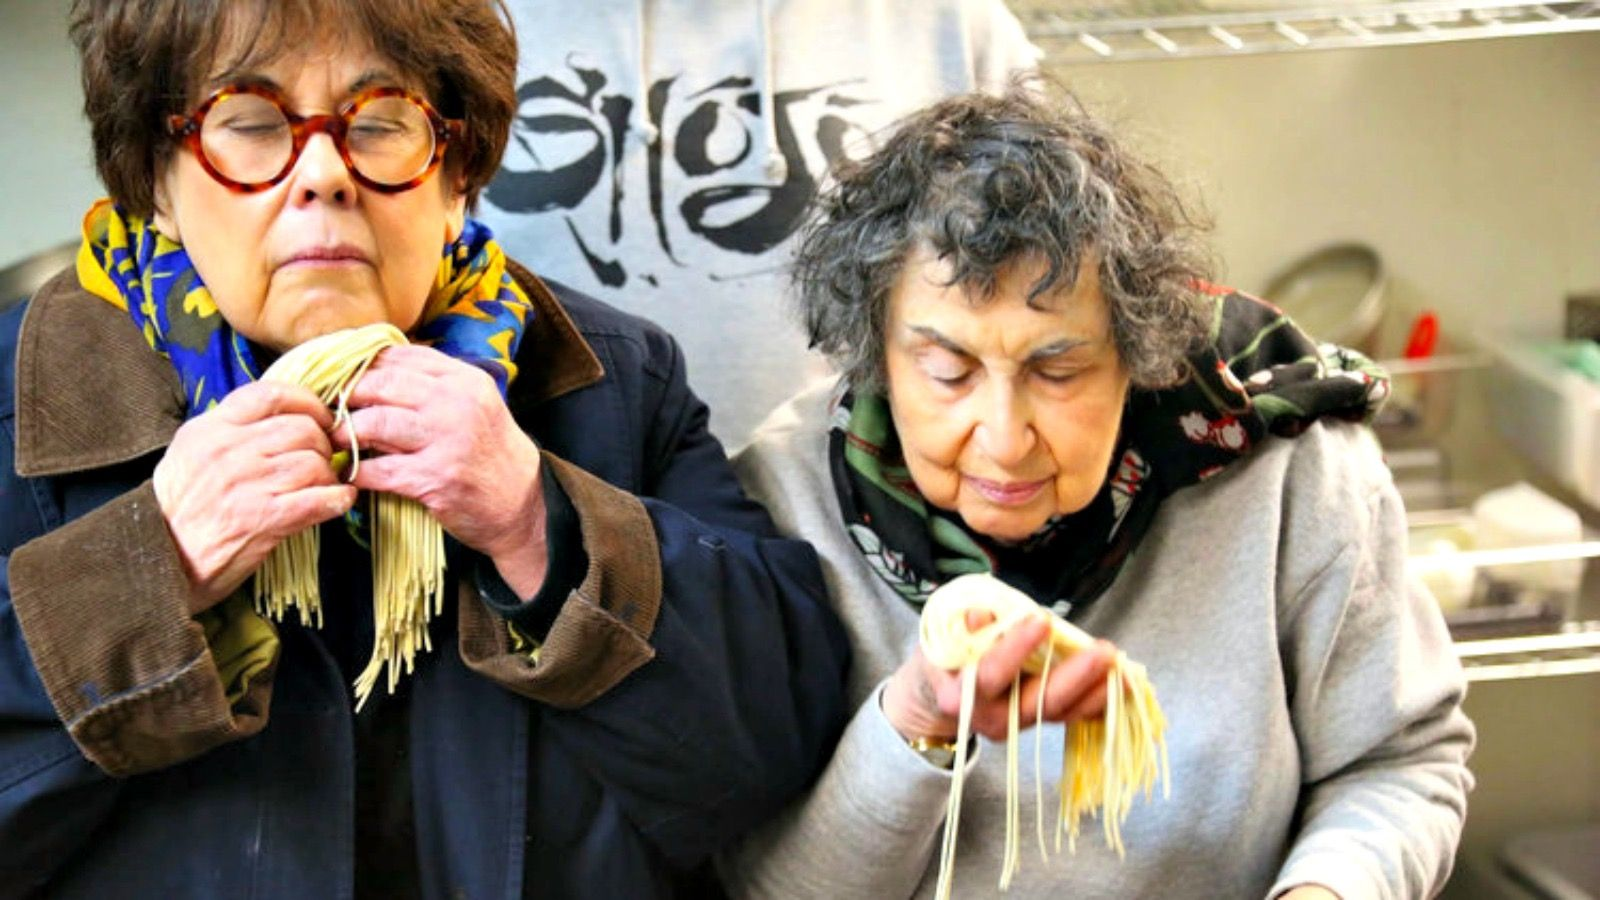 Noodle Meditation: The Brass sisters, Marilynn (left) and Sheila, star in a new cooking series in which they flirt their way into professional kitchens before trying what they learned at home.